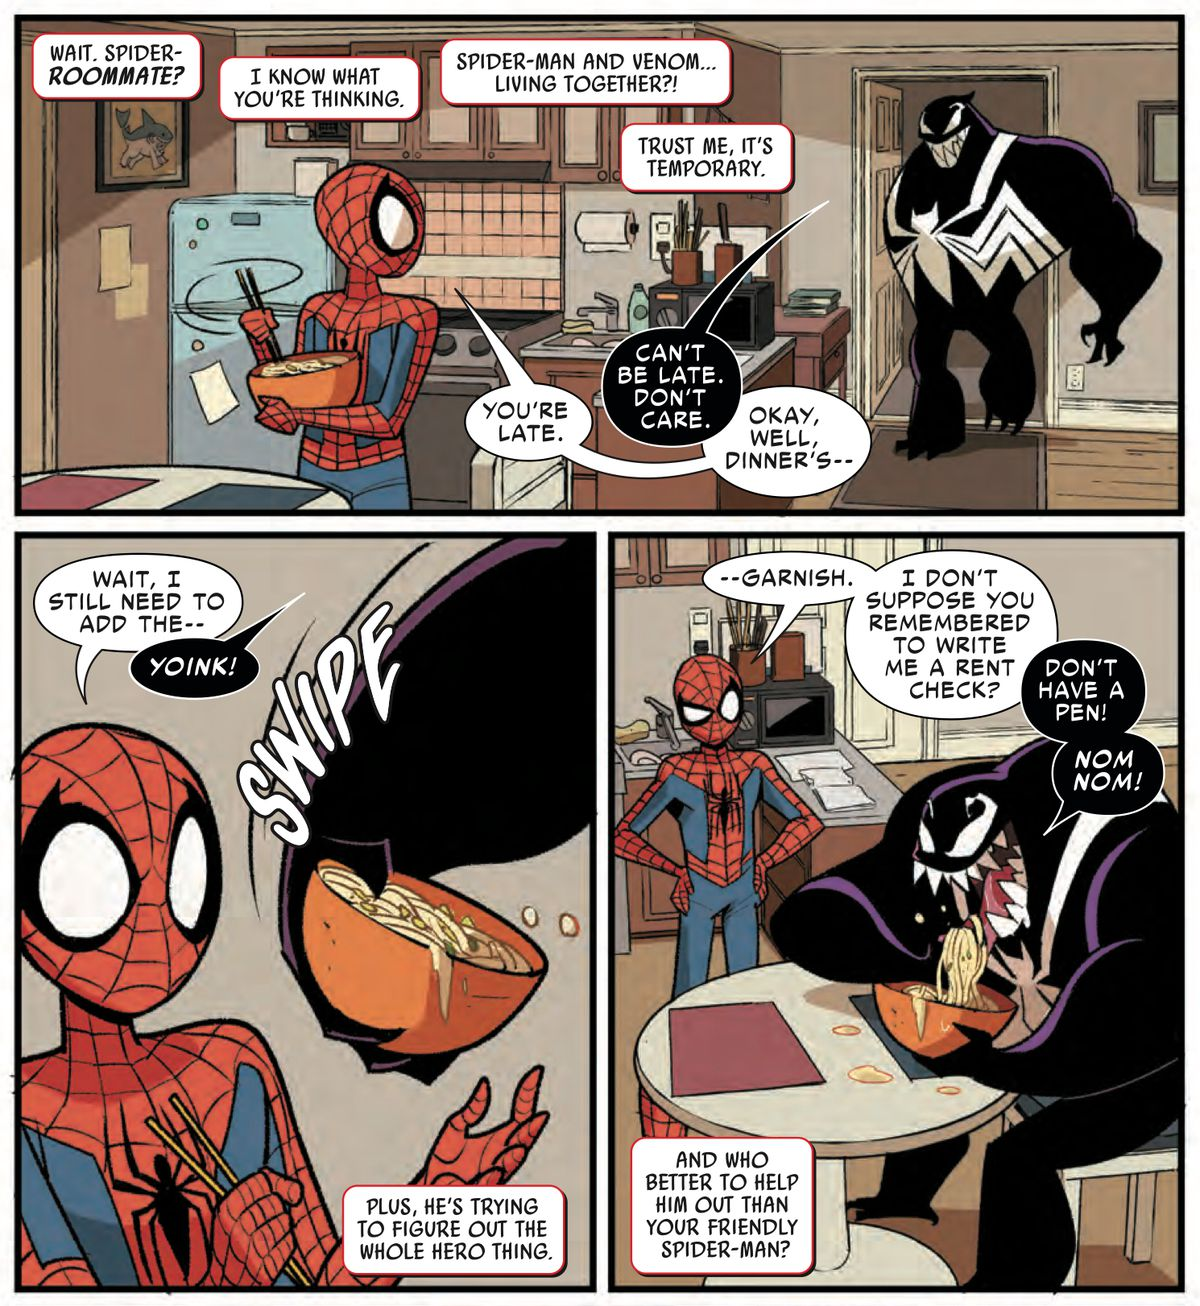 Venom gets home and eats ALL of Spider-Man's carefully prepared noodle dinner because he is the worst roommate, in Spider-Man & Venom: Double Trouble #1, Marvel Comics (2019).